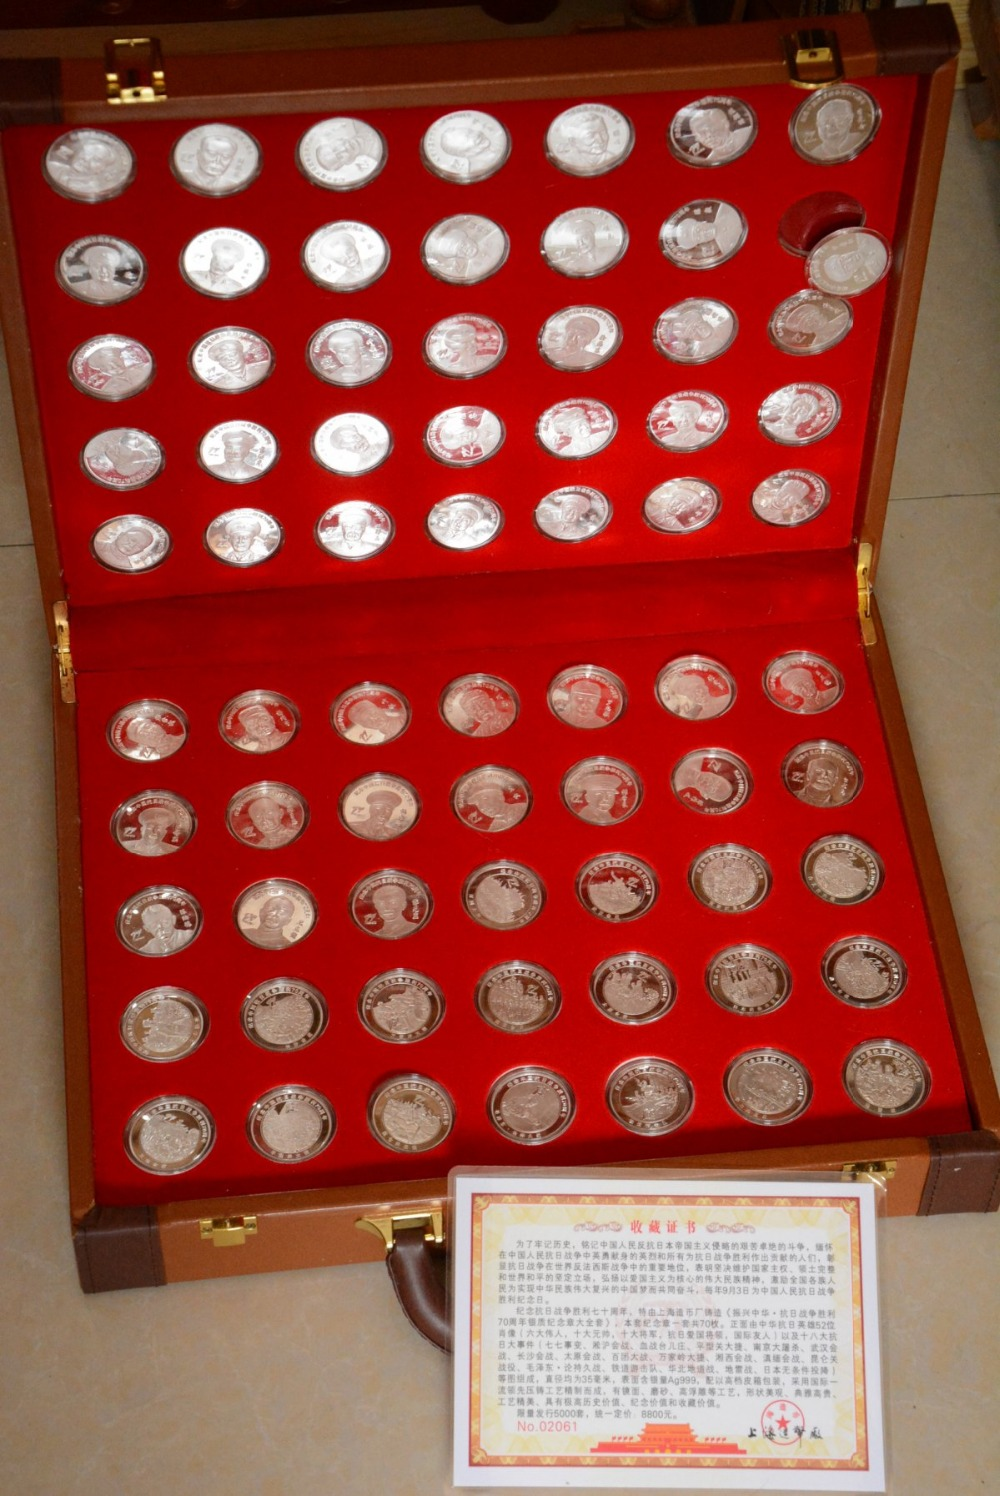 Us 20241 Rare Chinese Government Issued Wwii List Of Famous Chinese Generals And War Silver Coin70 Piecesetfree Shipping In Non Currency Coins